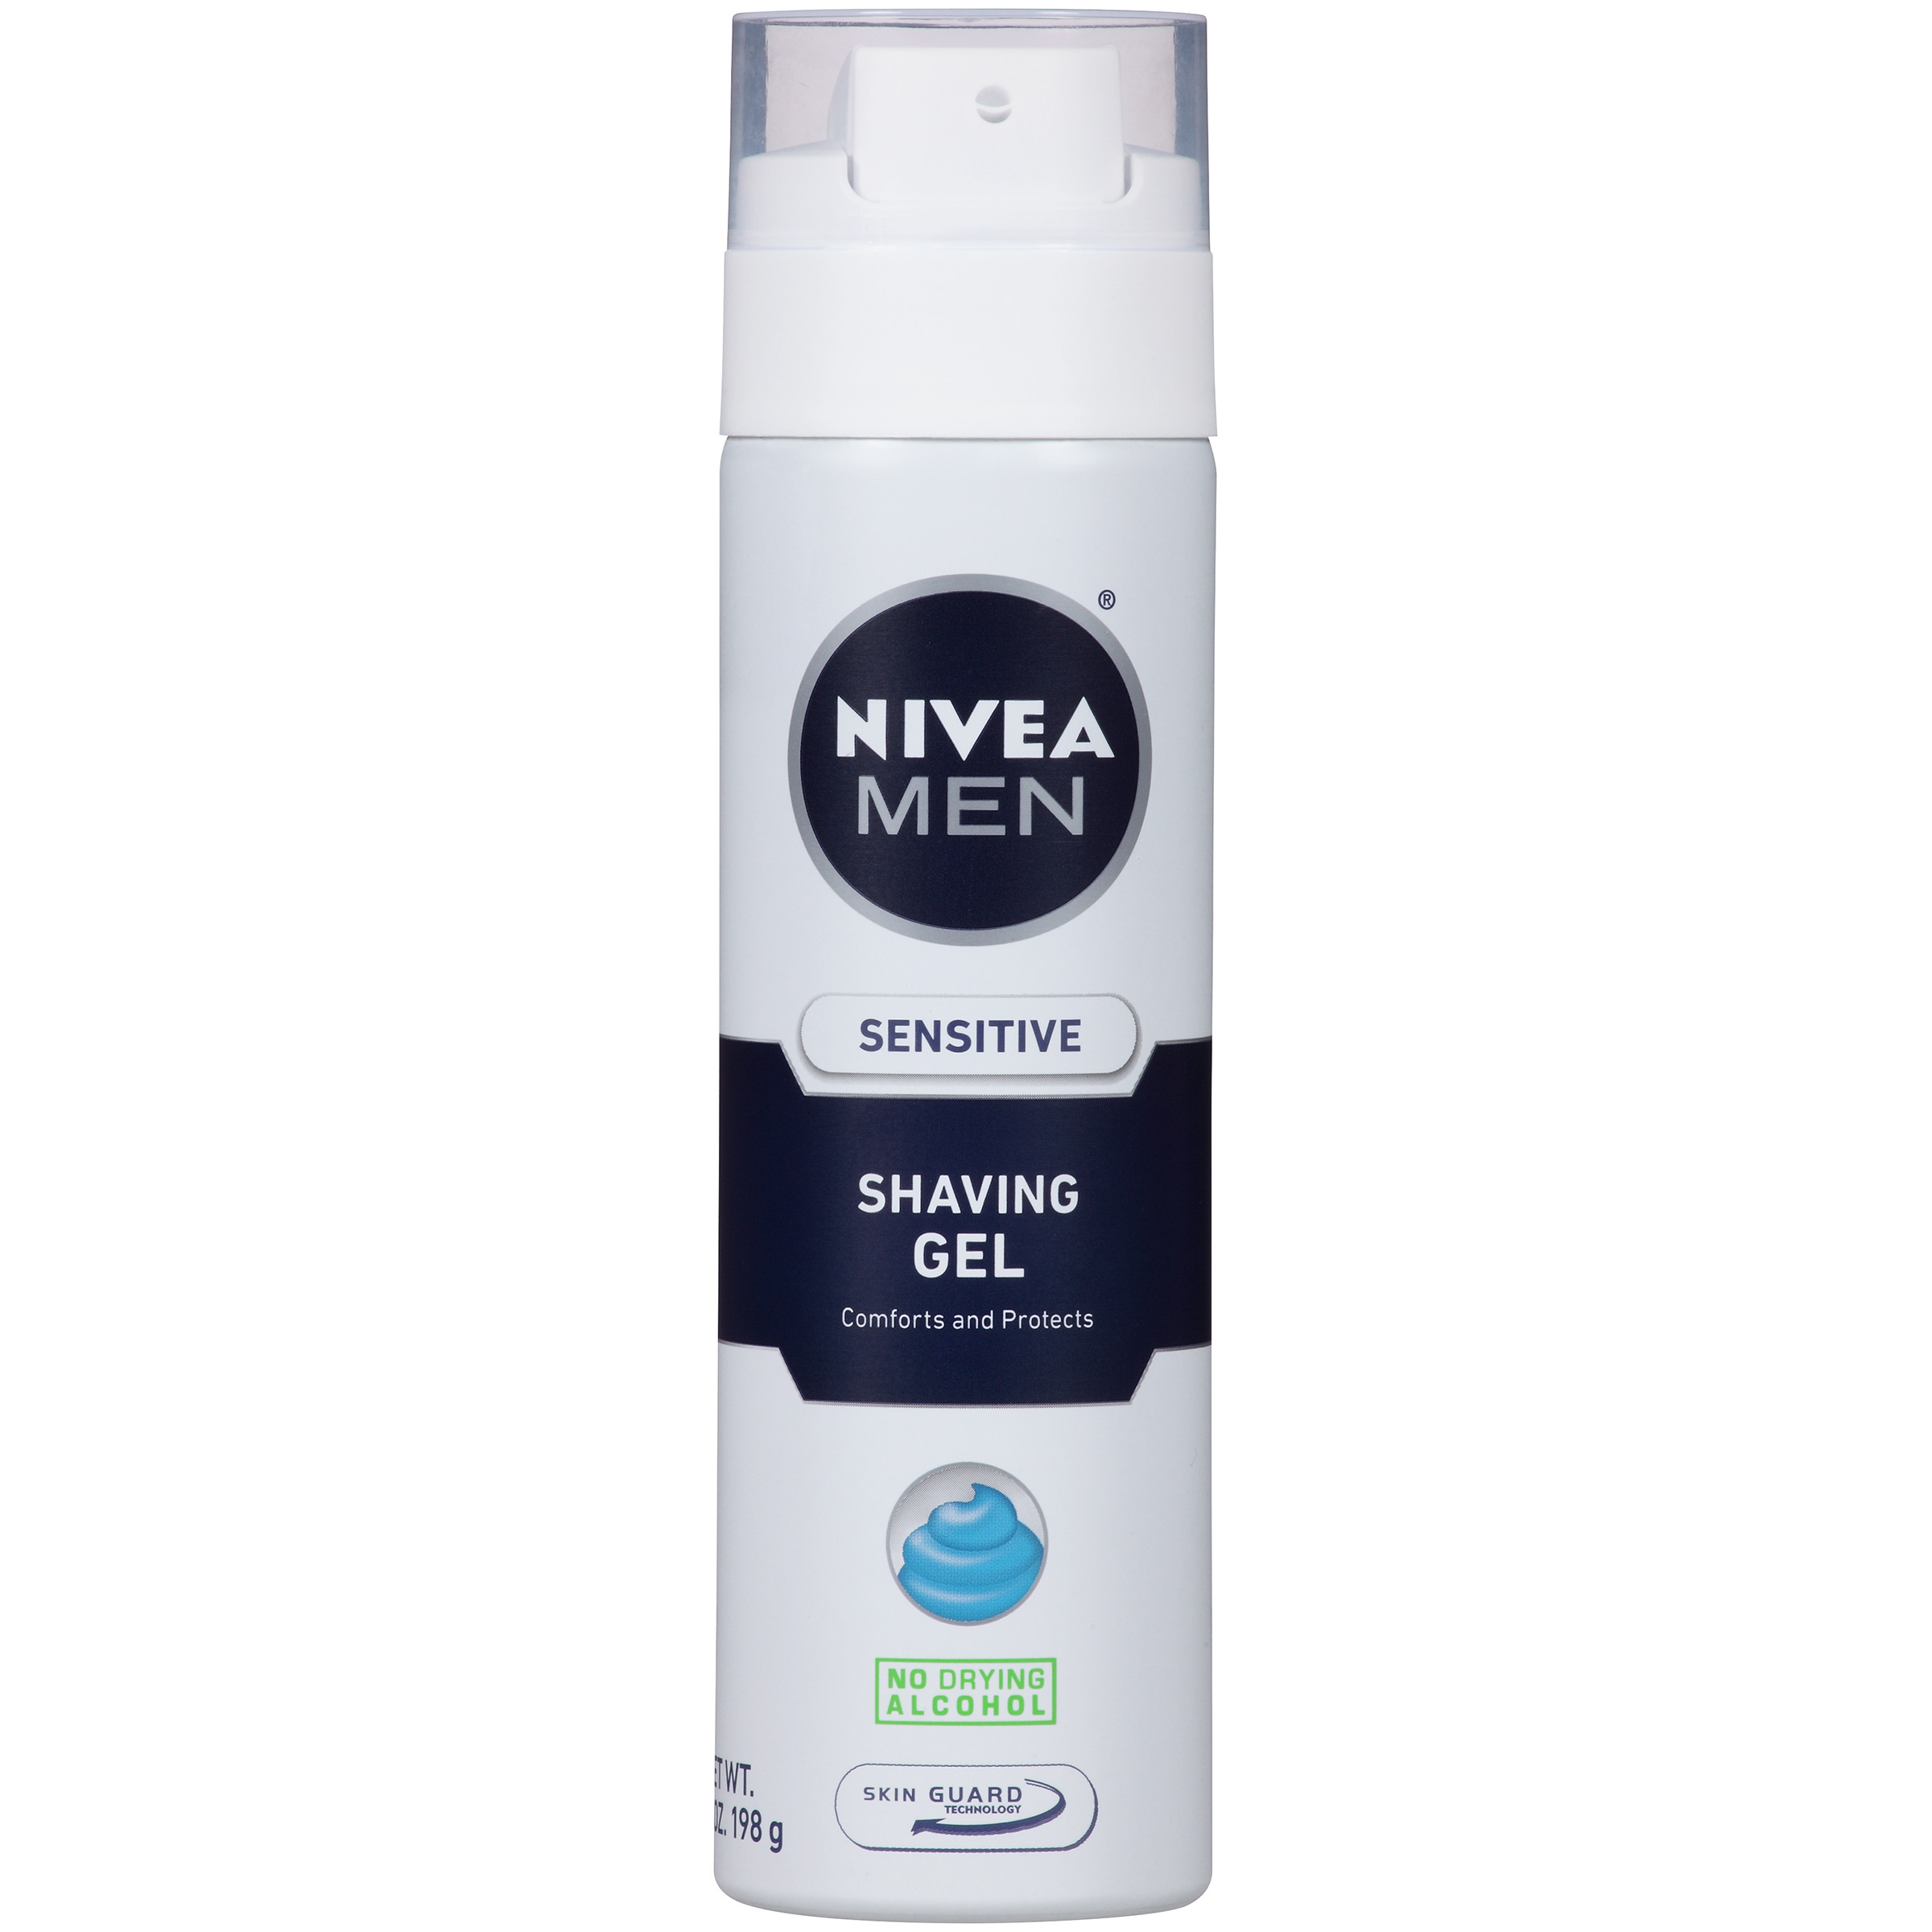 Nivea For Men Sensitive Skin Shaving Gel, 7 oz - Walmart.com